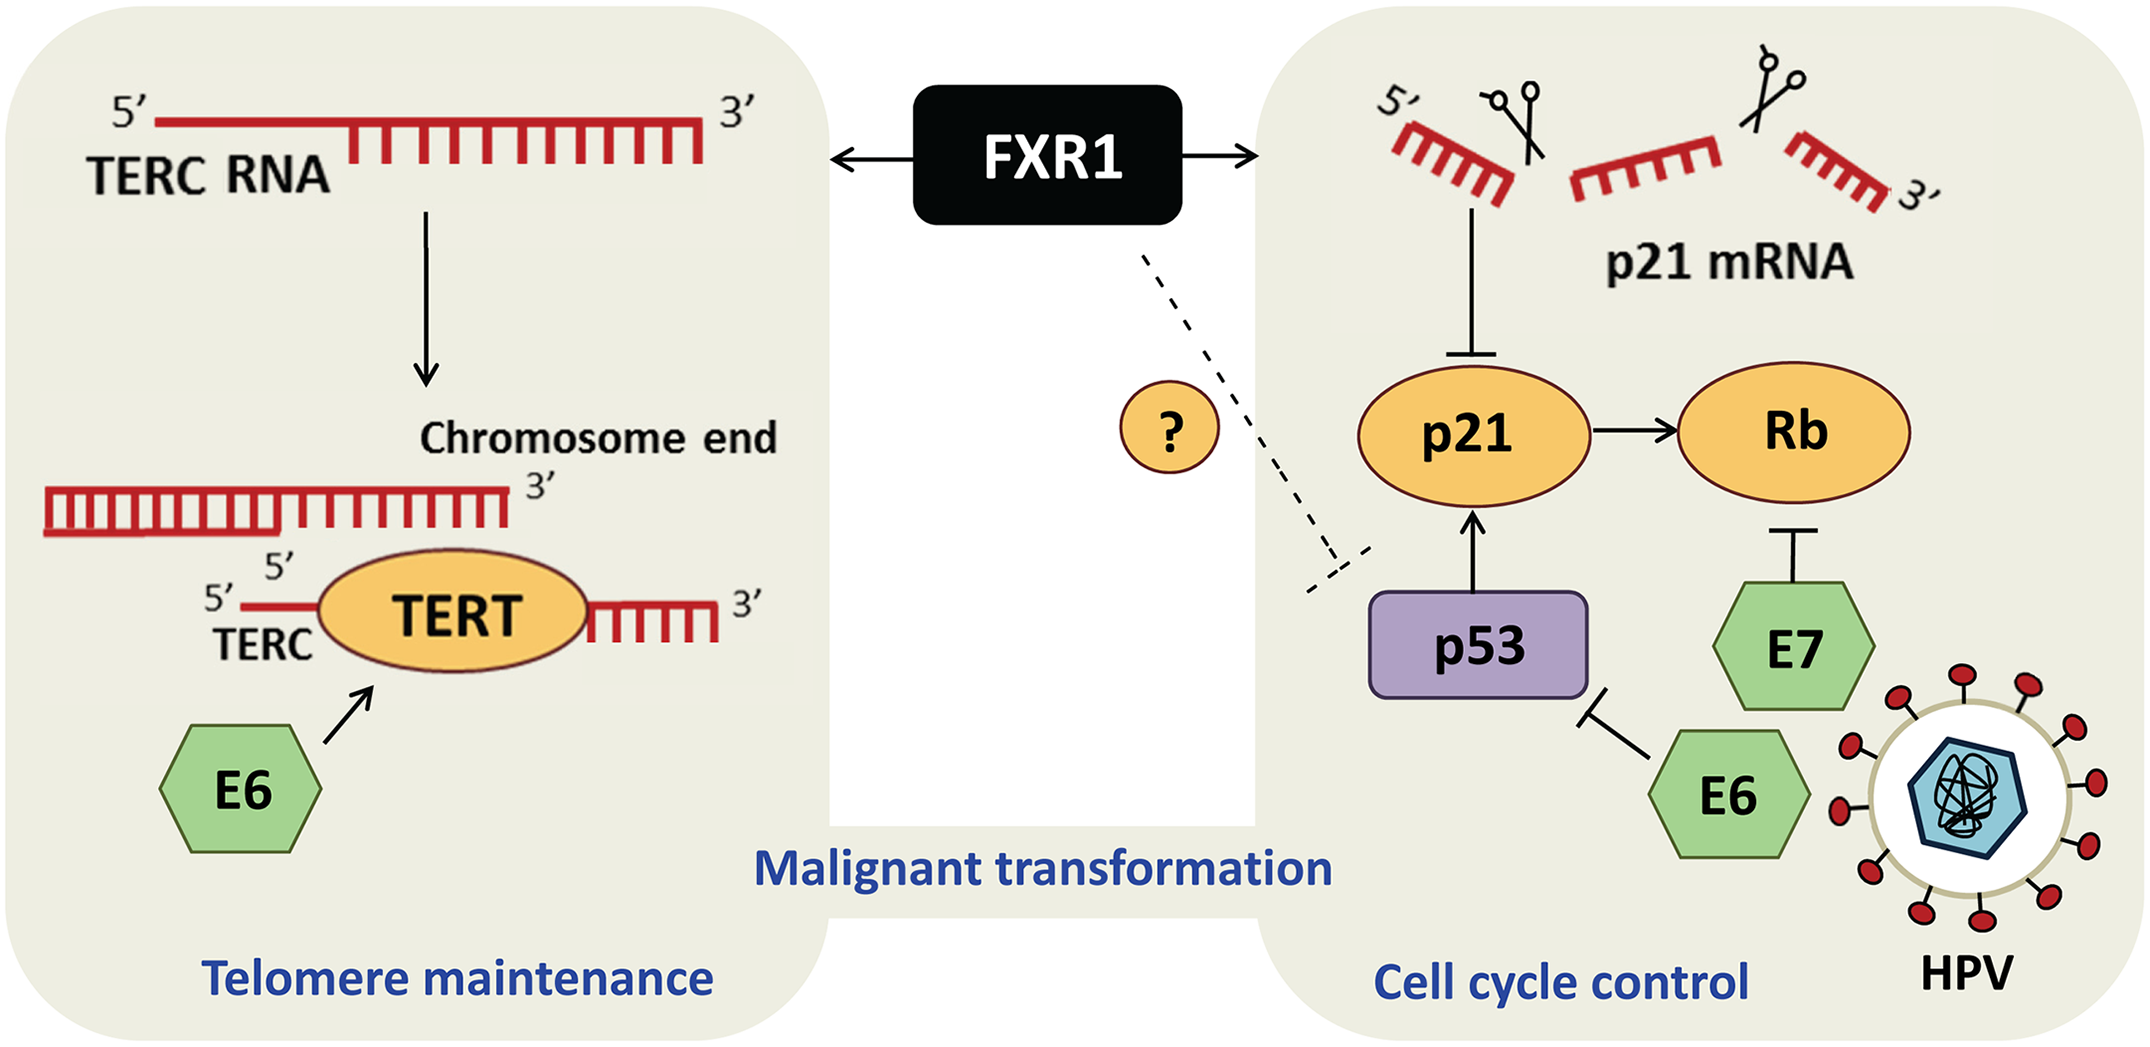 FXR1 engages dual mechanisms to promote malignant transformation in HNSCC.